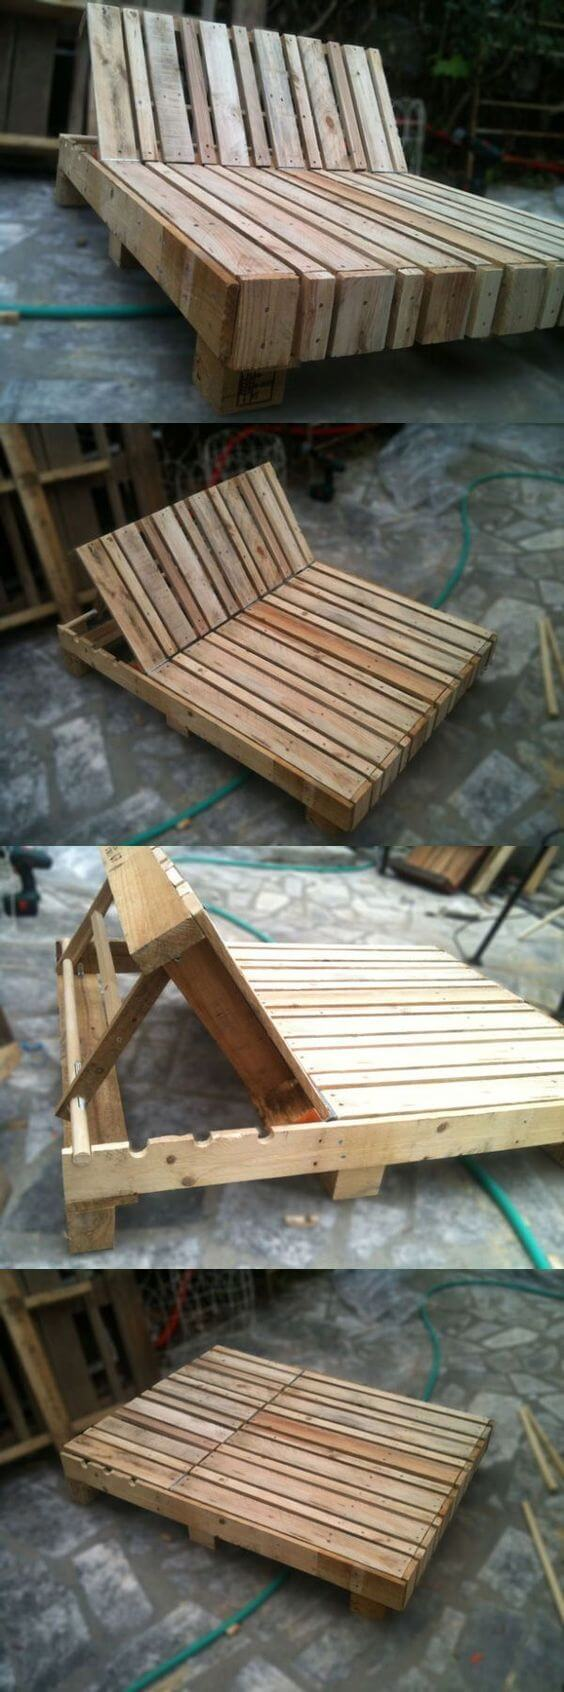 27 Best Outdoor Pallet Furniture Ideas and Designs for 2017 on Pallet Design Ideas  id=56198